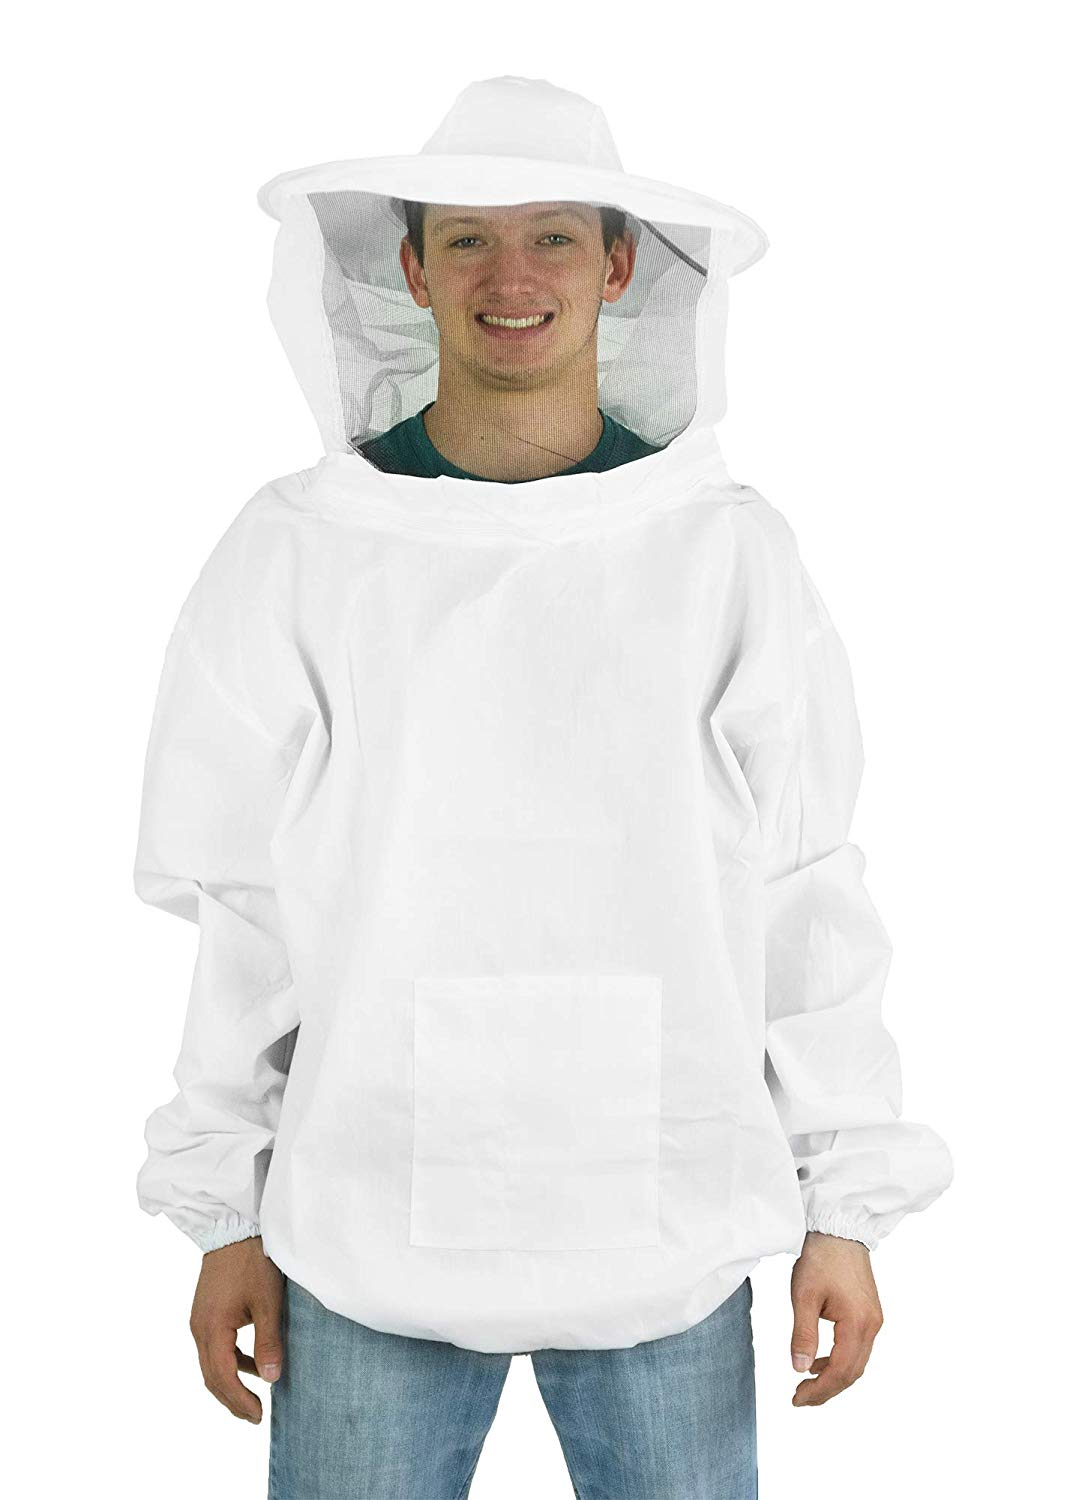 Beekeeping Suit costume for mens